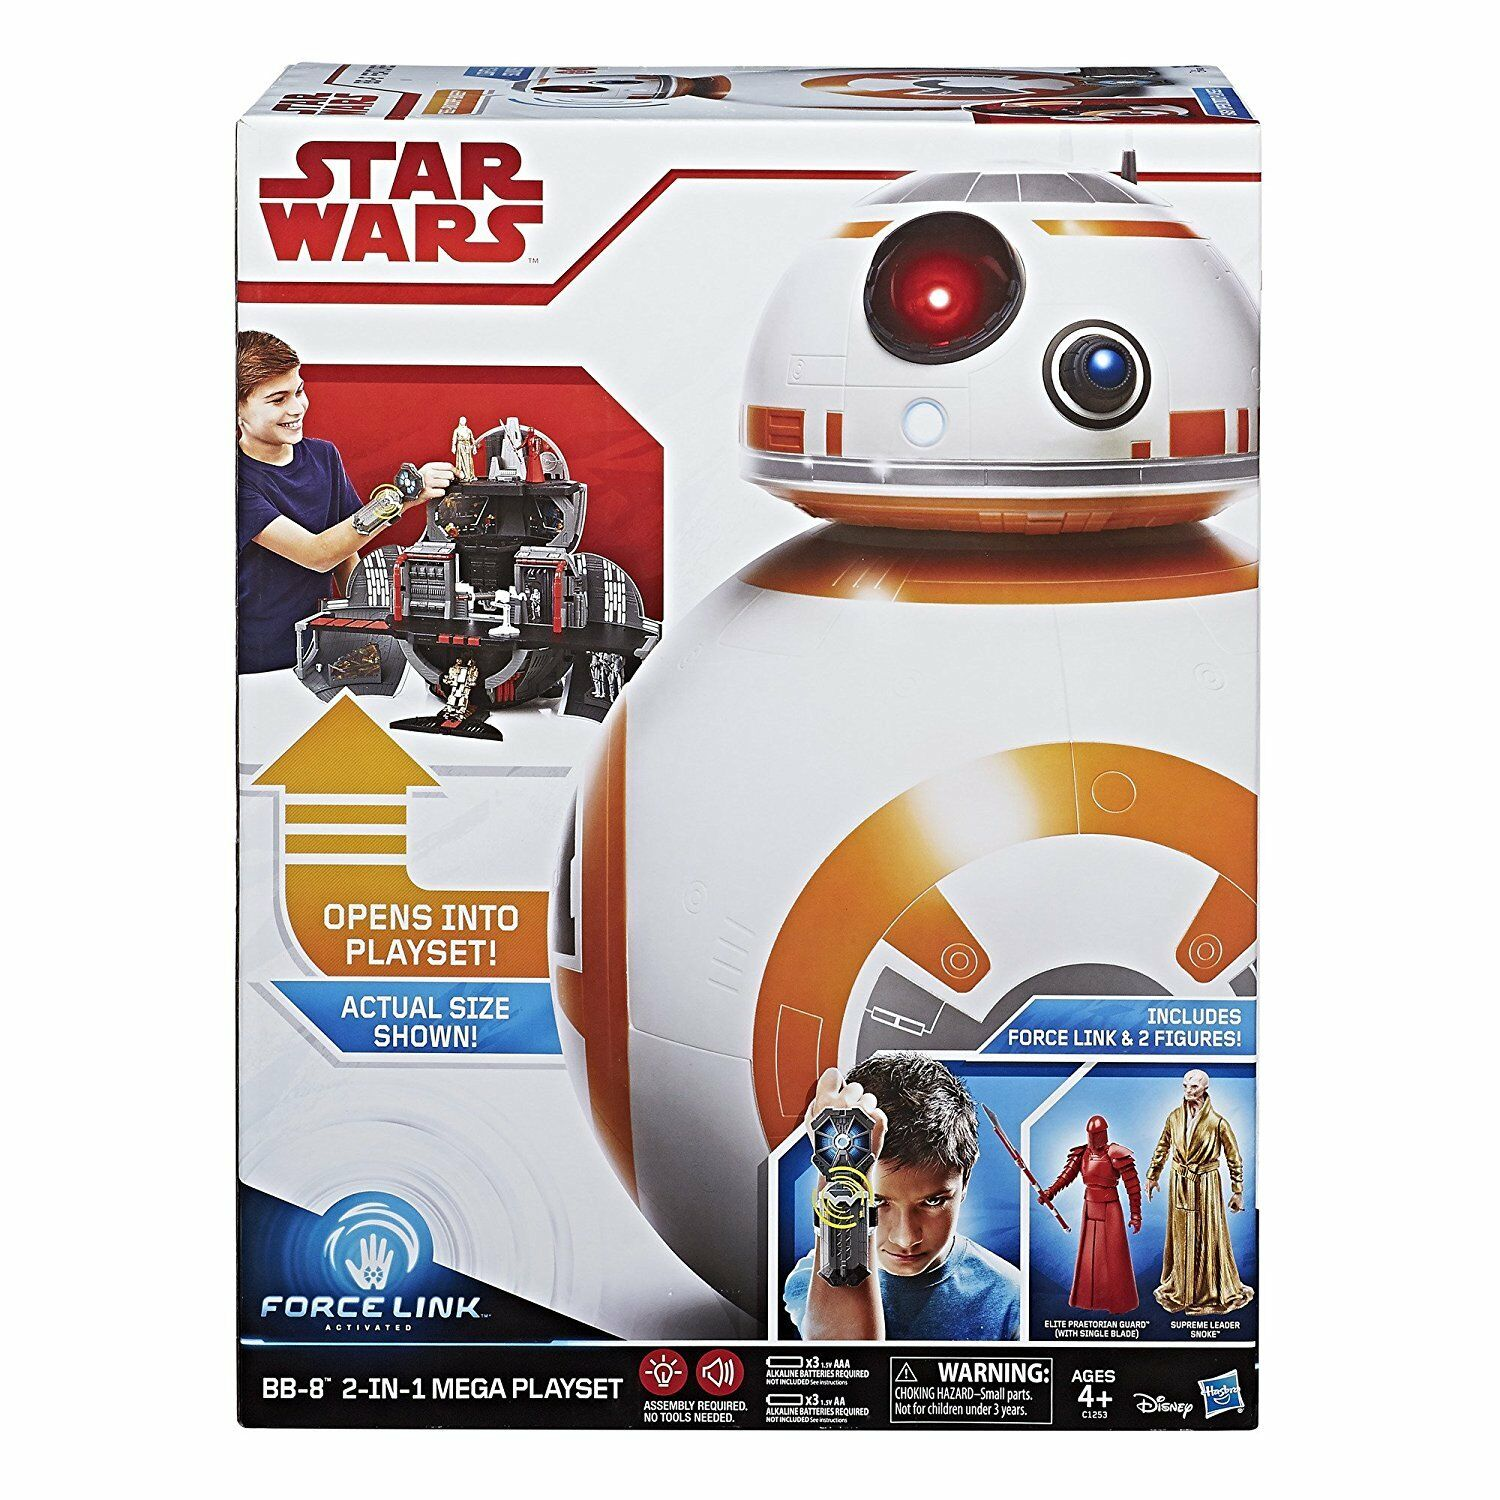 Star Wars BB-8 2-in-1 Mega Playset Force Link Activated Brand New Sealed